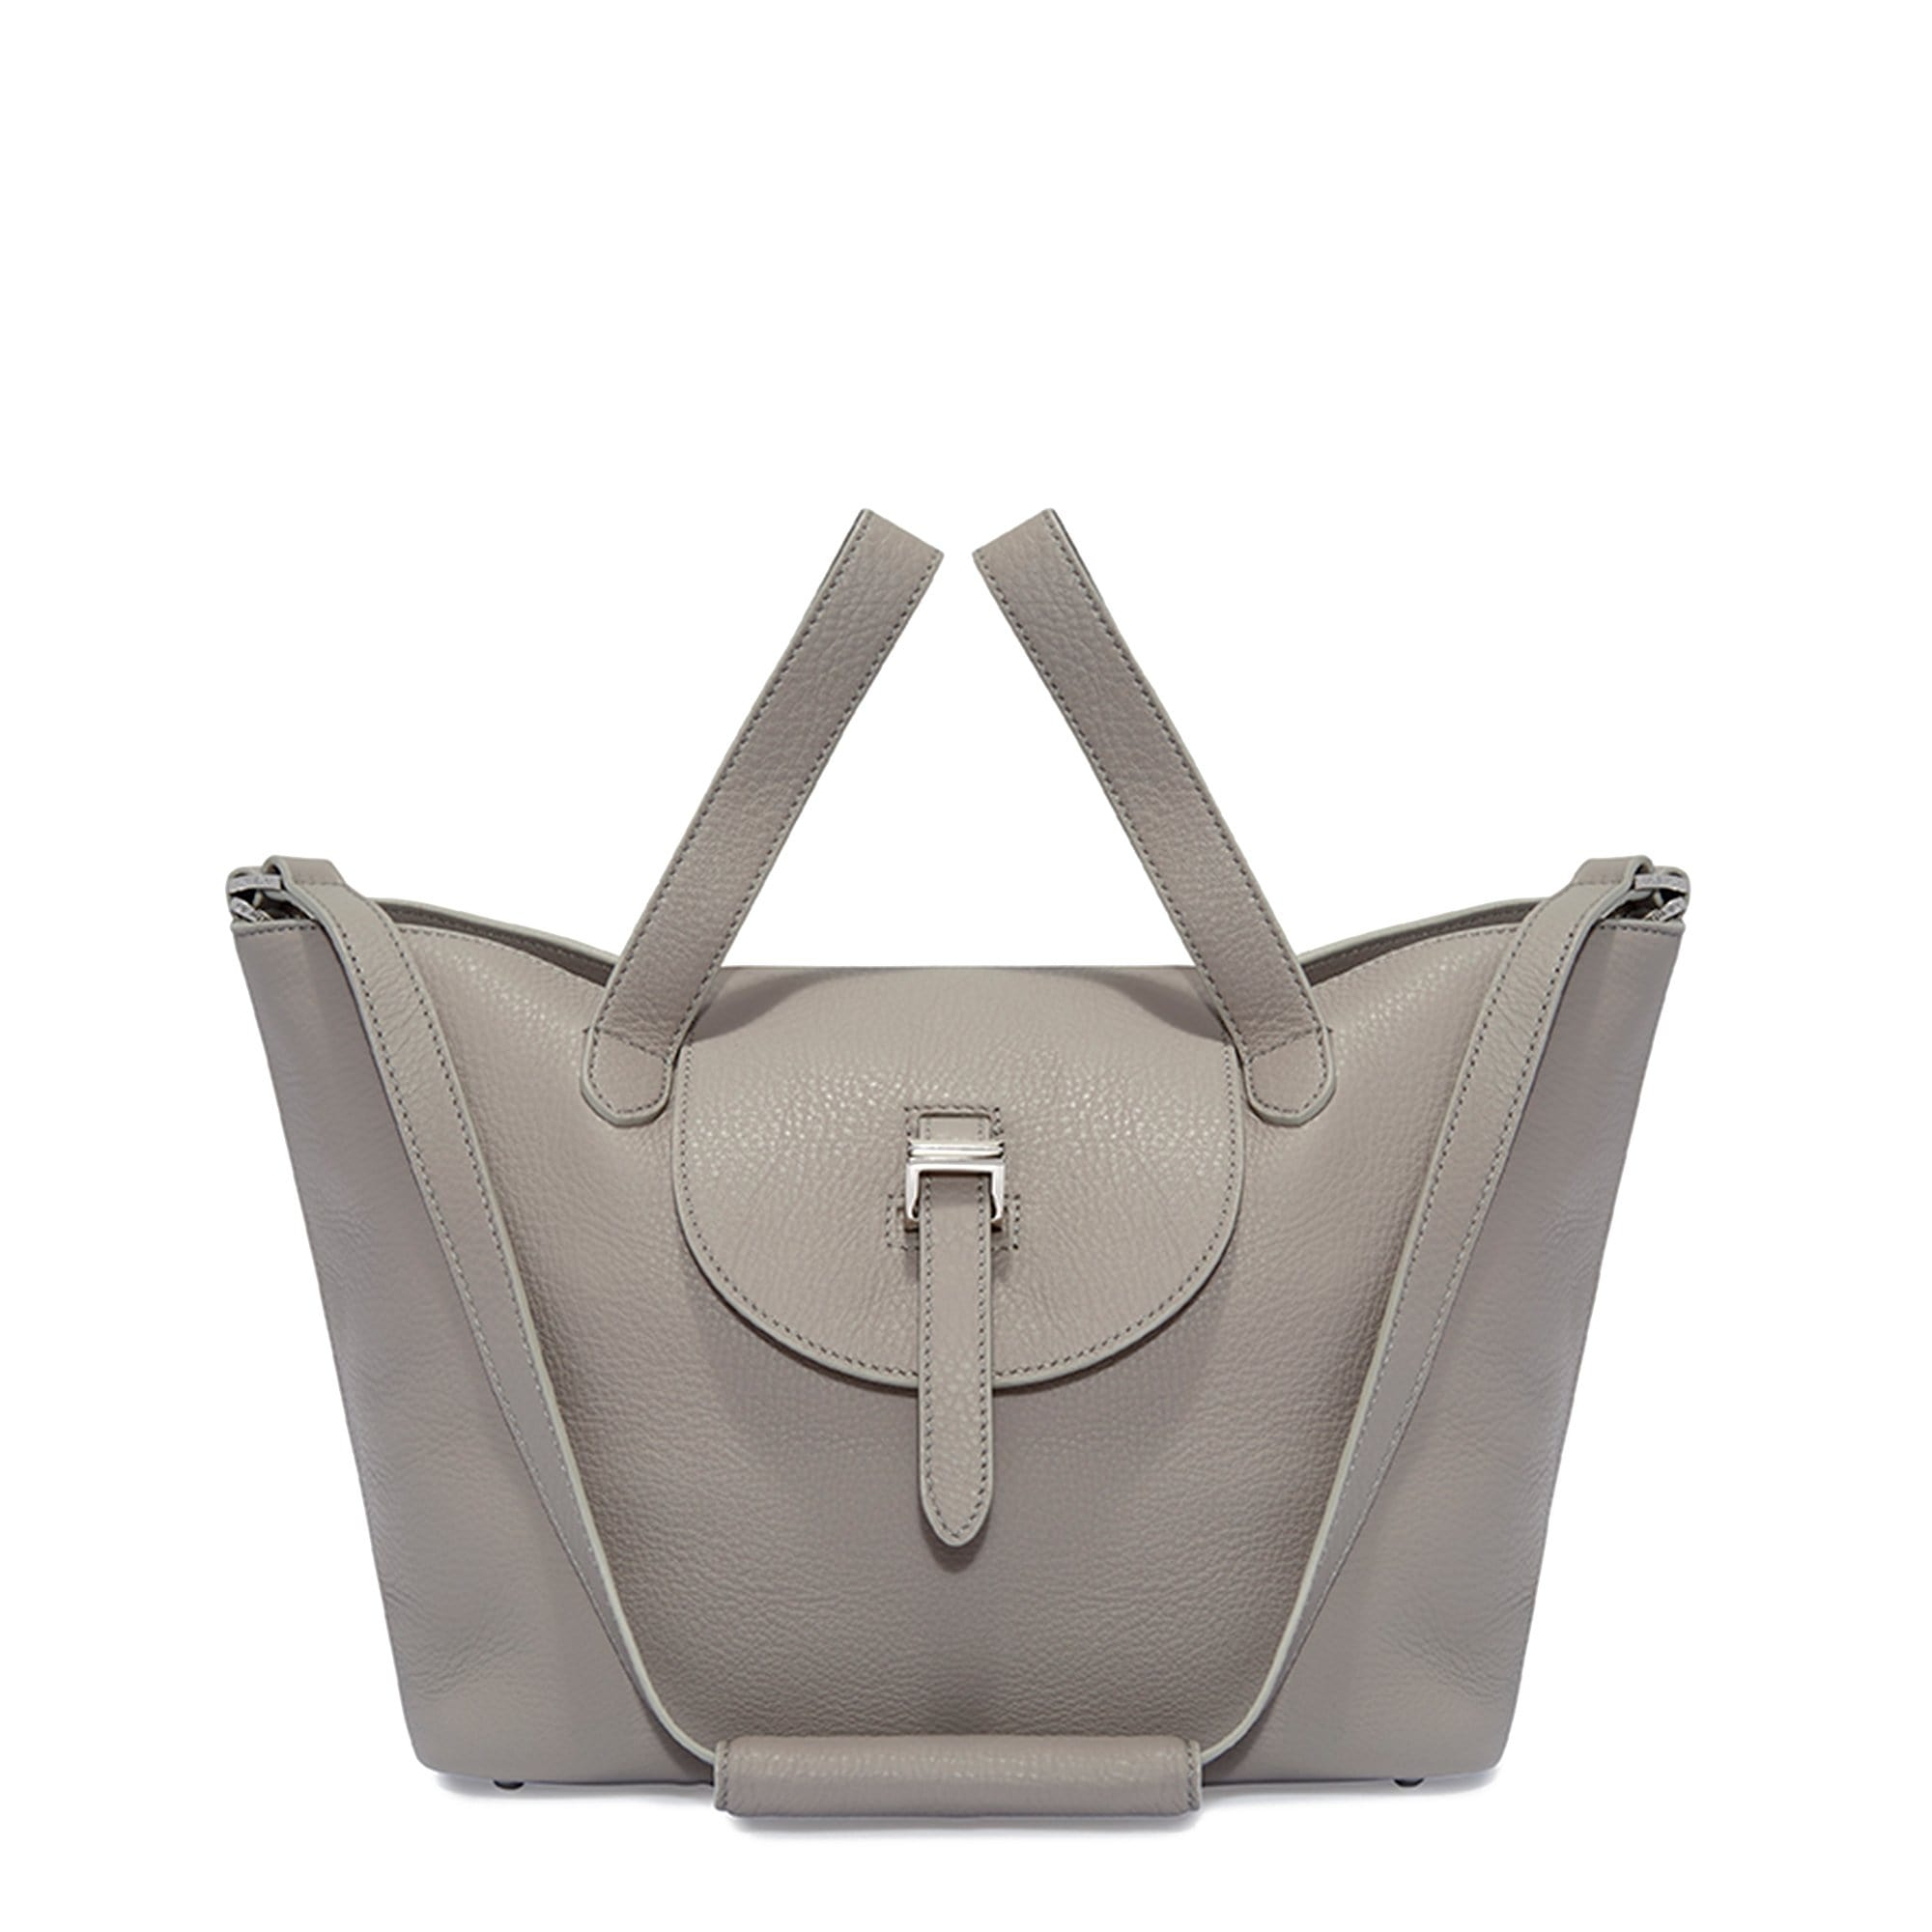 Thela Medium | Tote Bag | Taupe